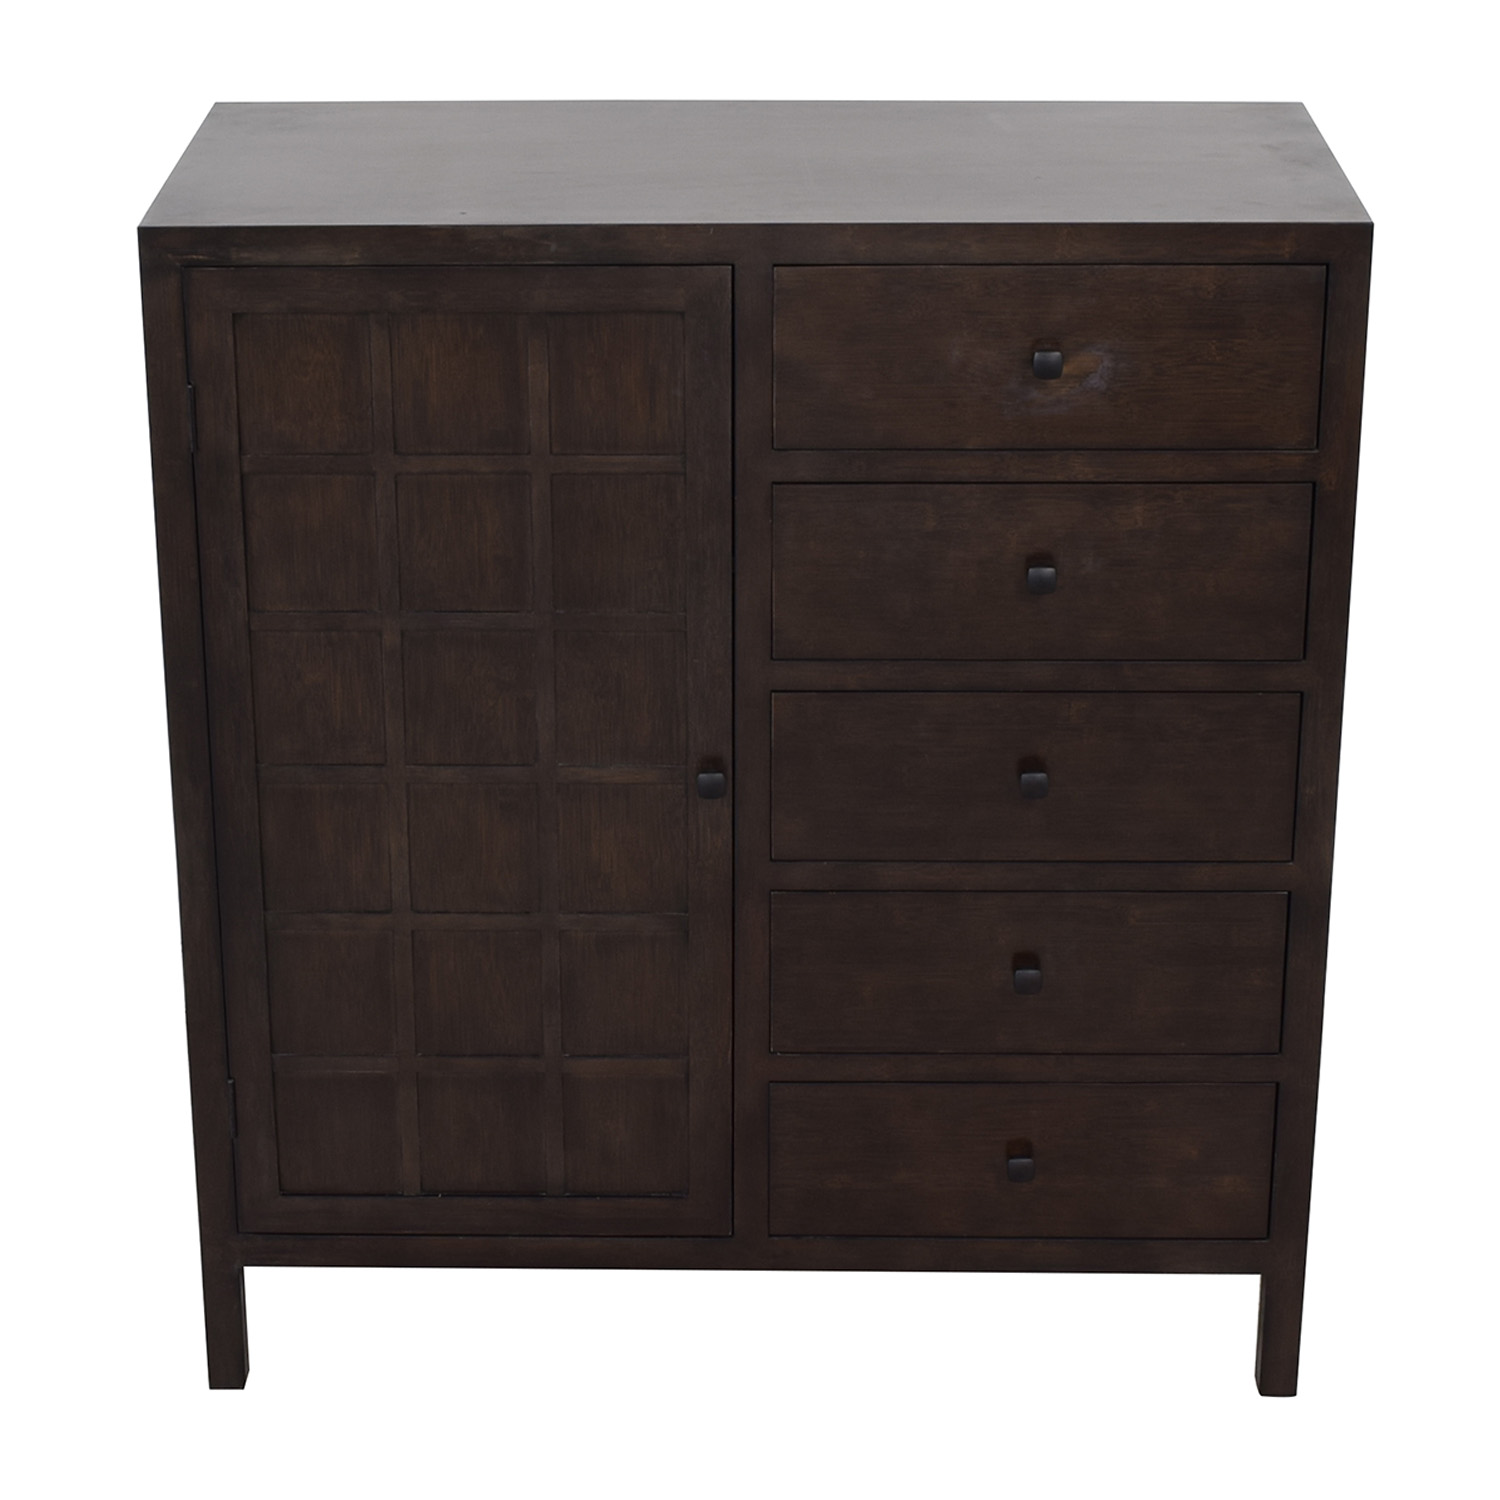 buy Crate & Barrel Maria Yee Five-Drawer Armoire Crate & Barrel Storage